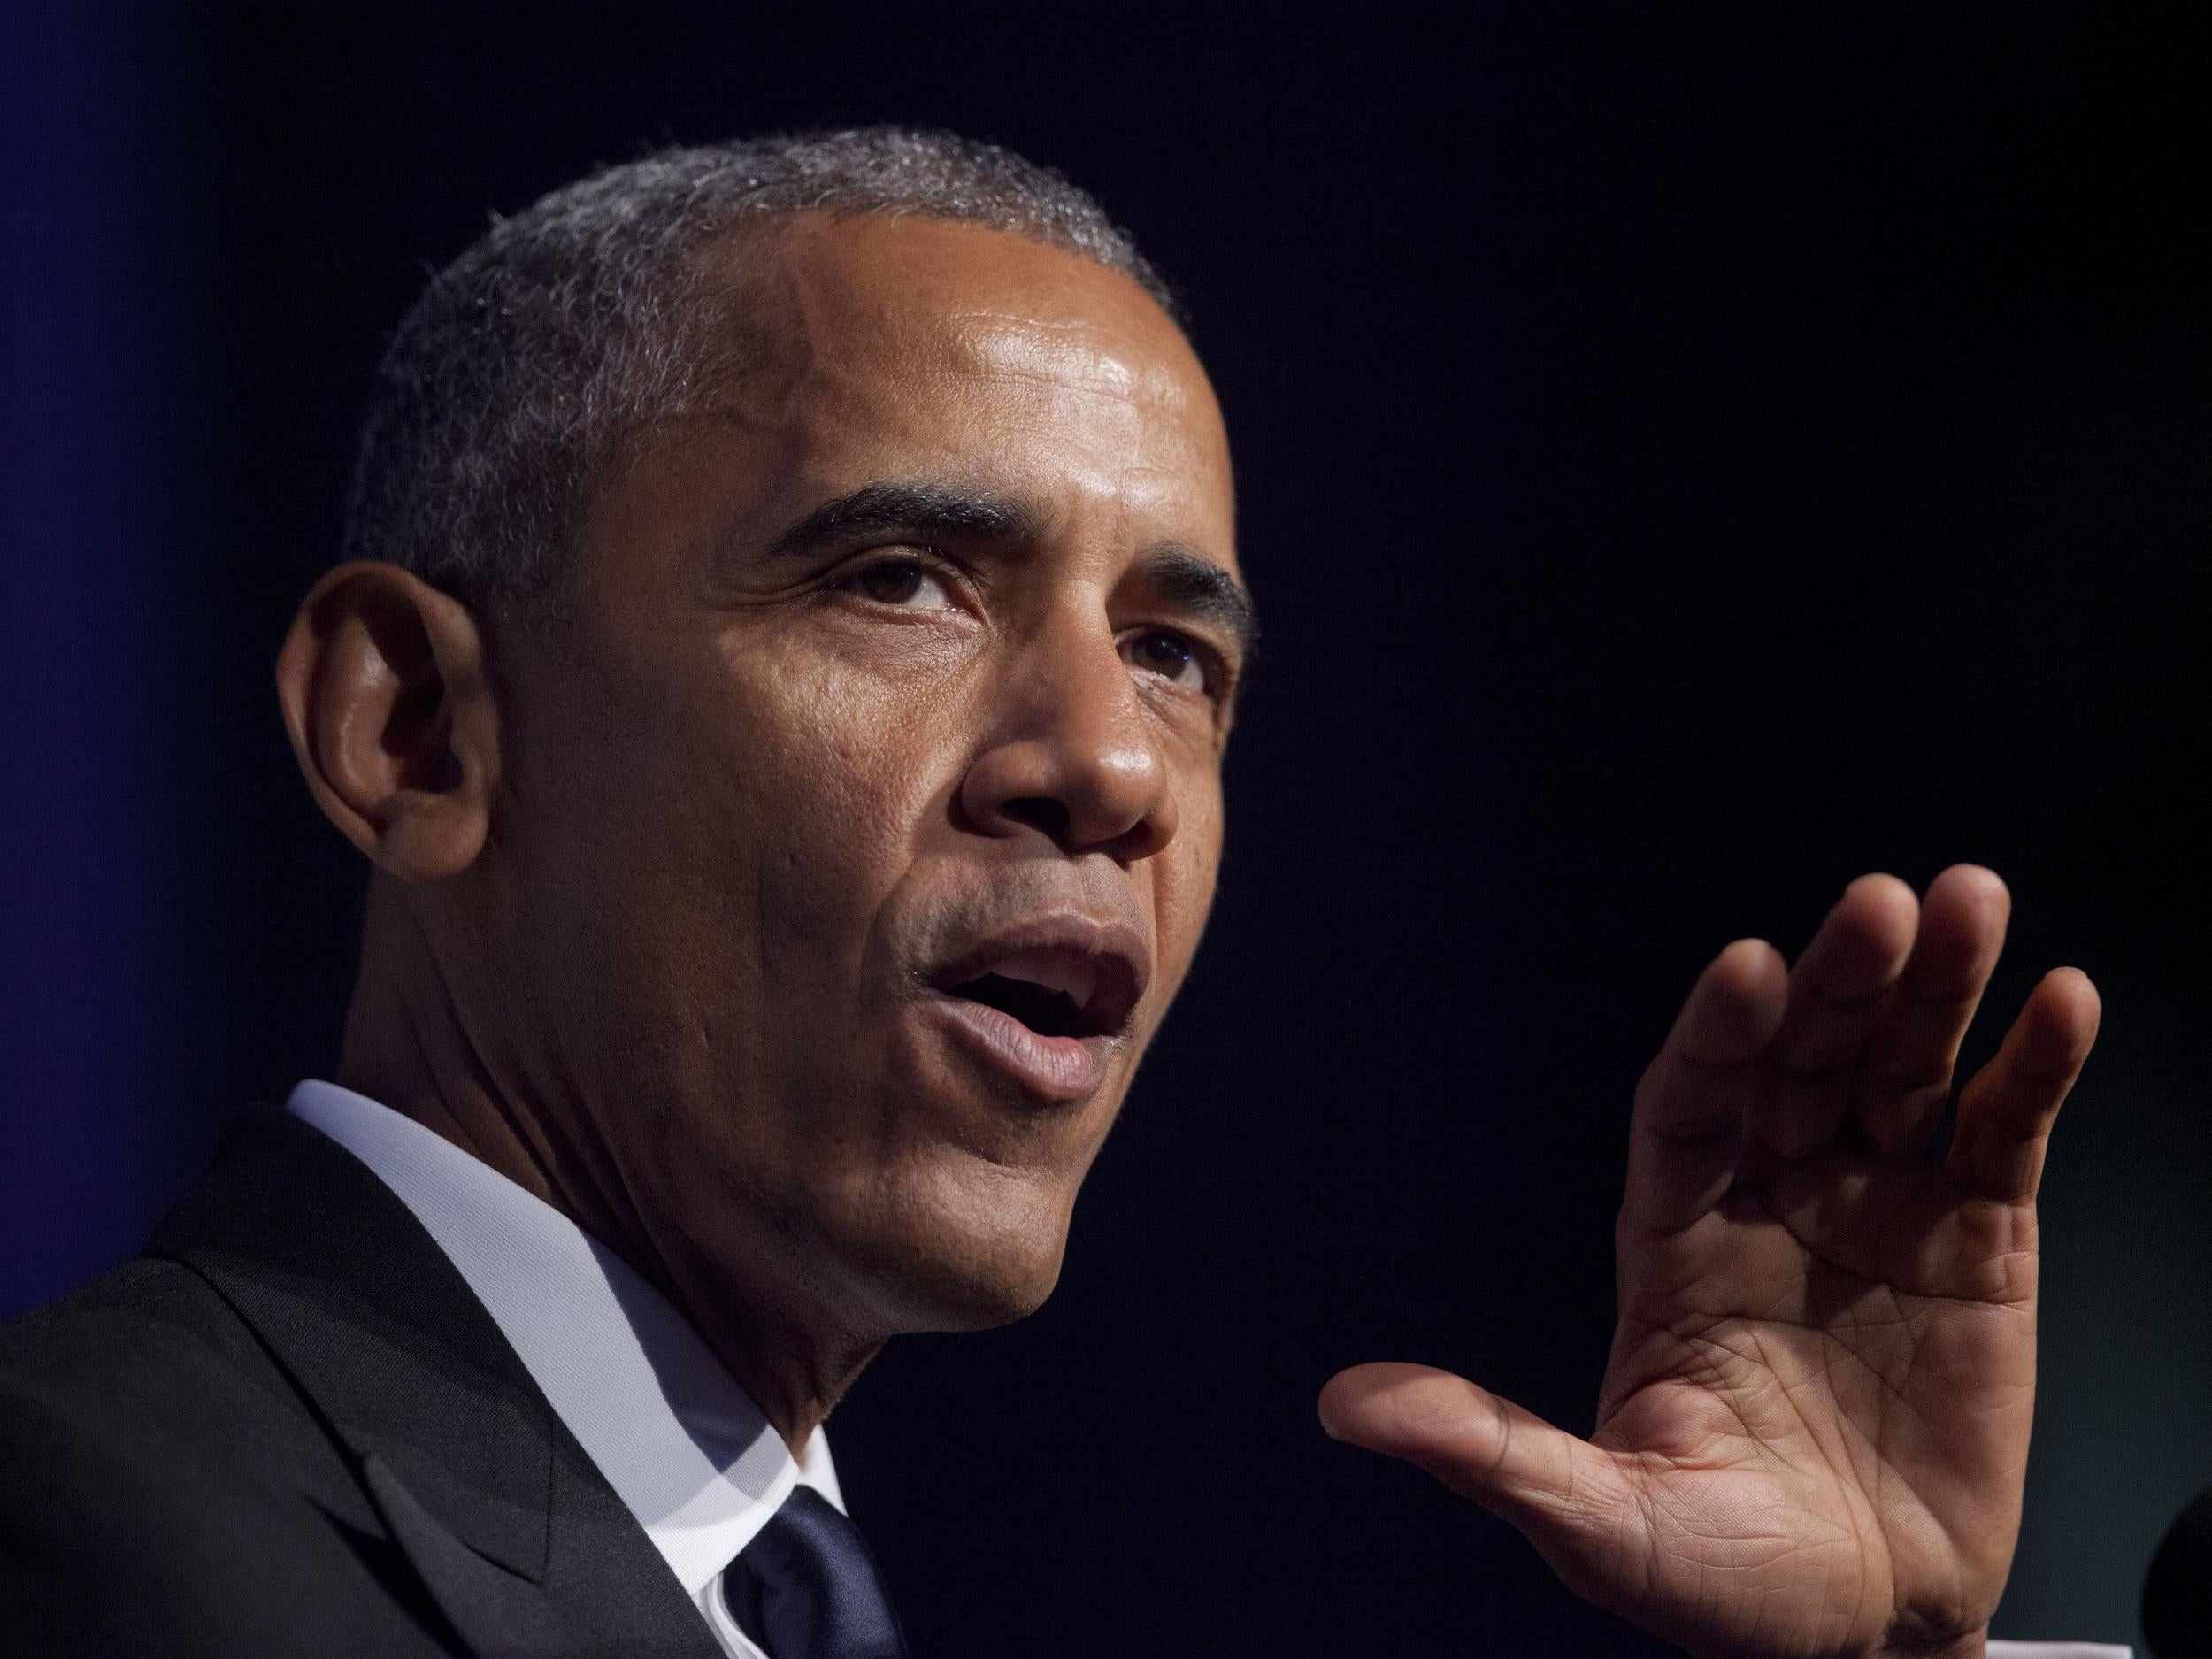 Barack Obama says any black person voting for Trump would be a 'personal insult' in extraordinary speech